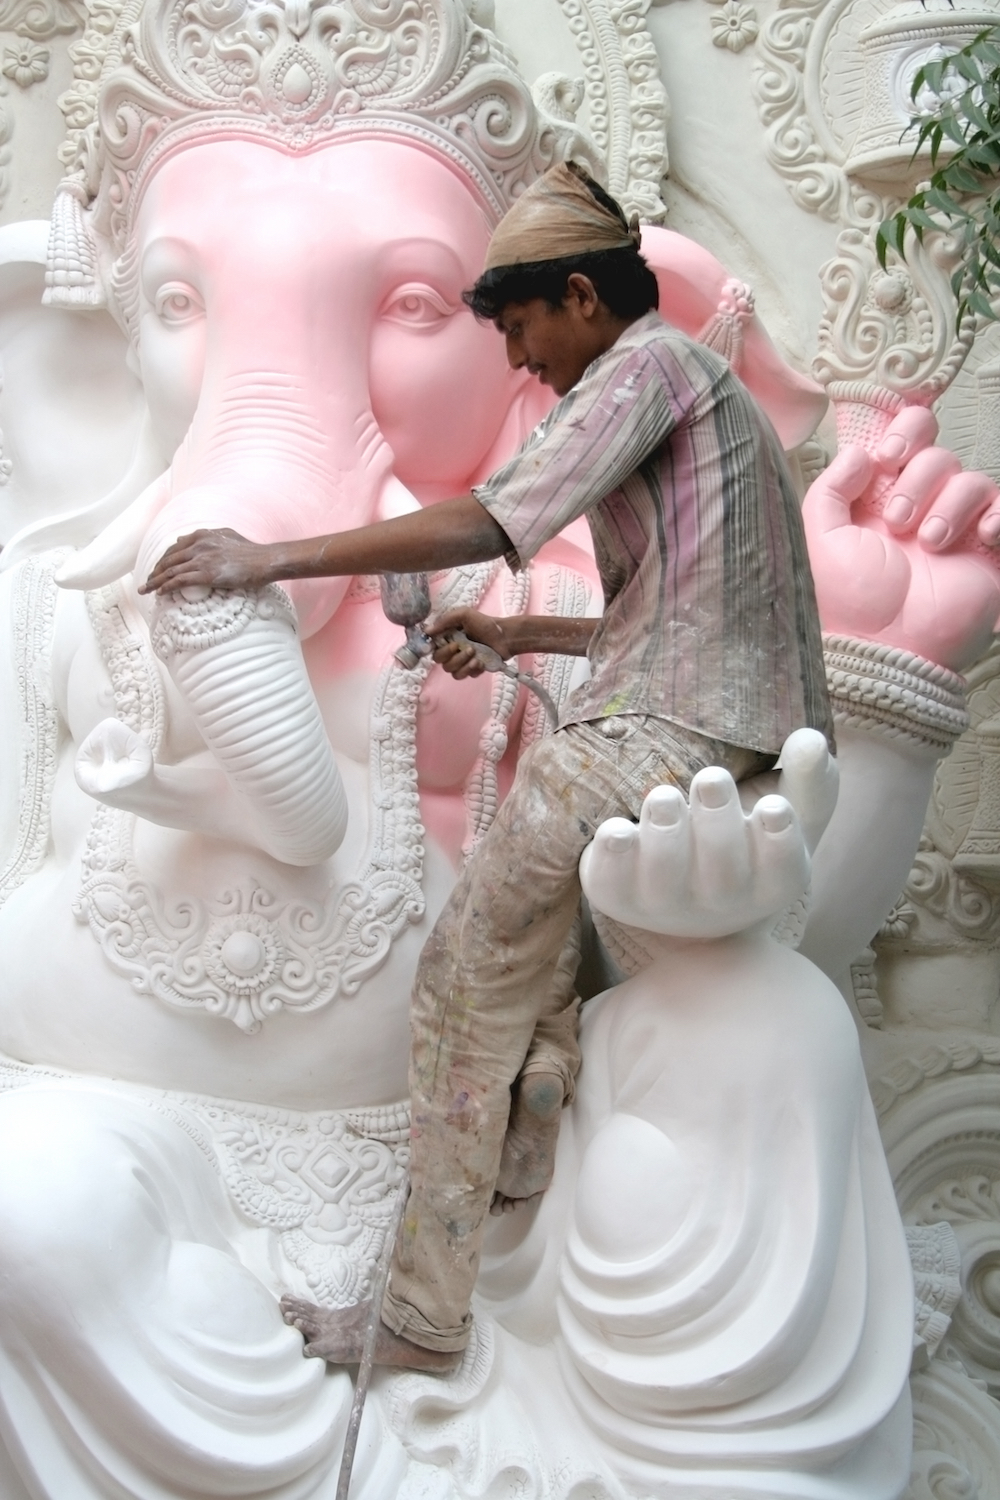 Artists working on a giant statue of Ganesh in Hyderabad © reddees / Shutterstock.com